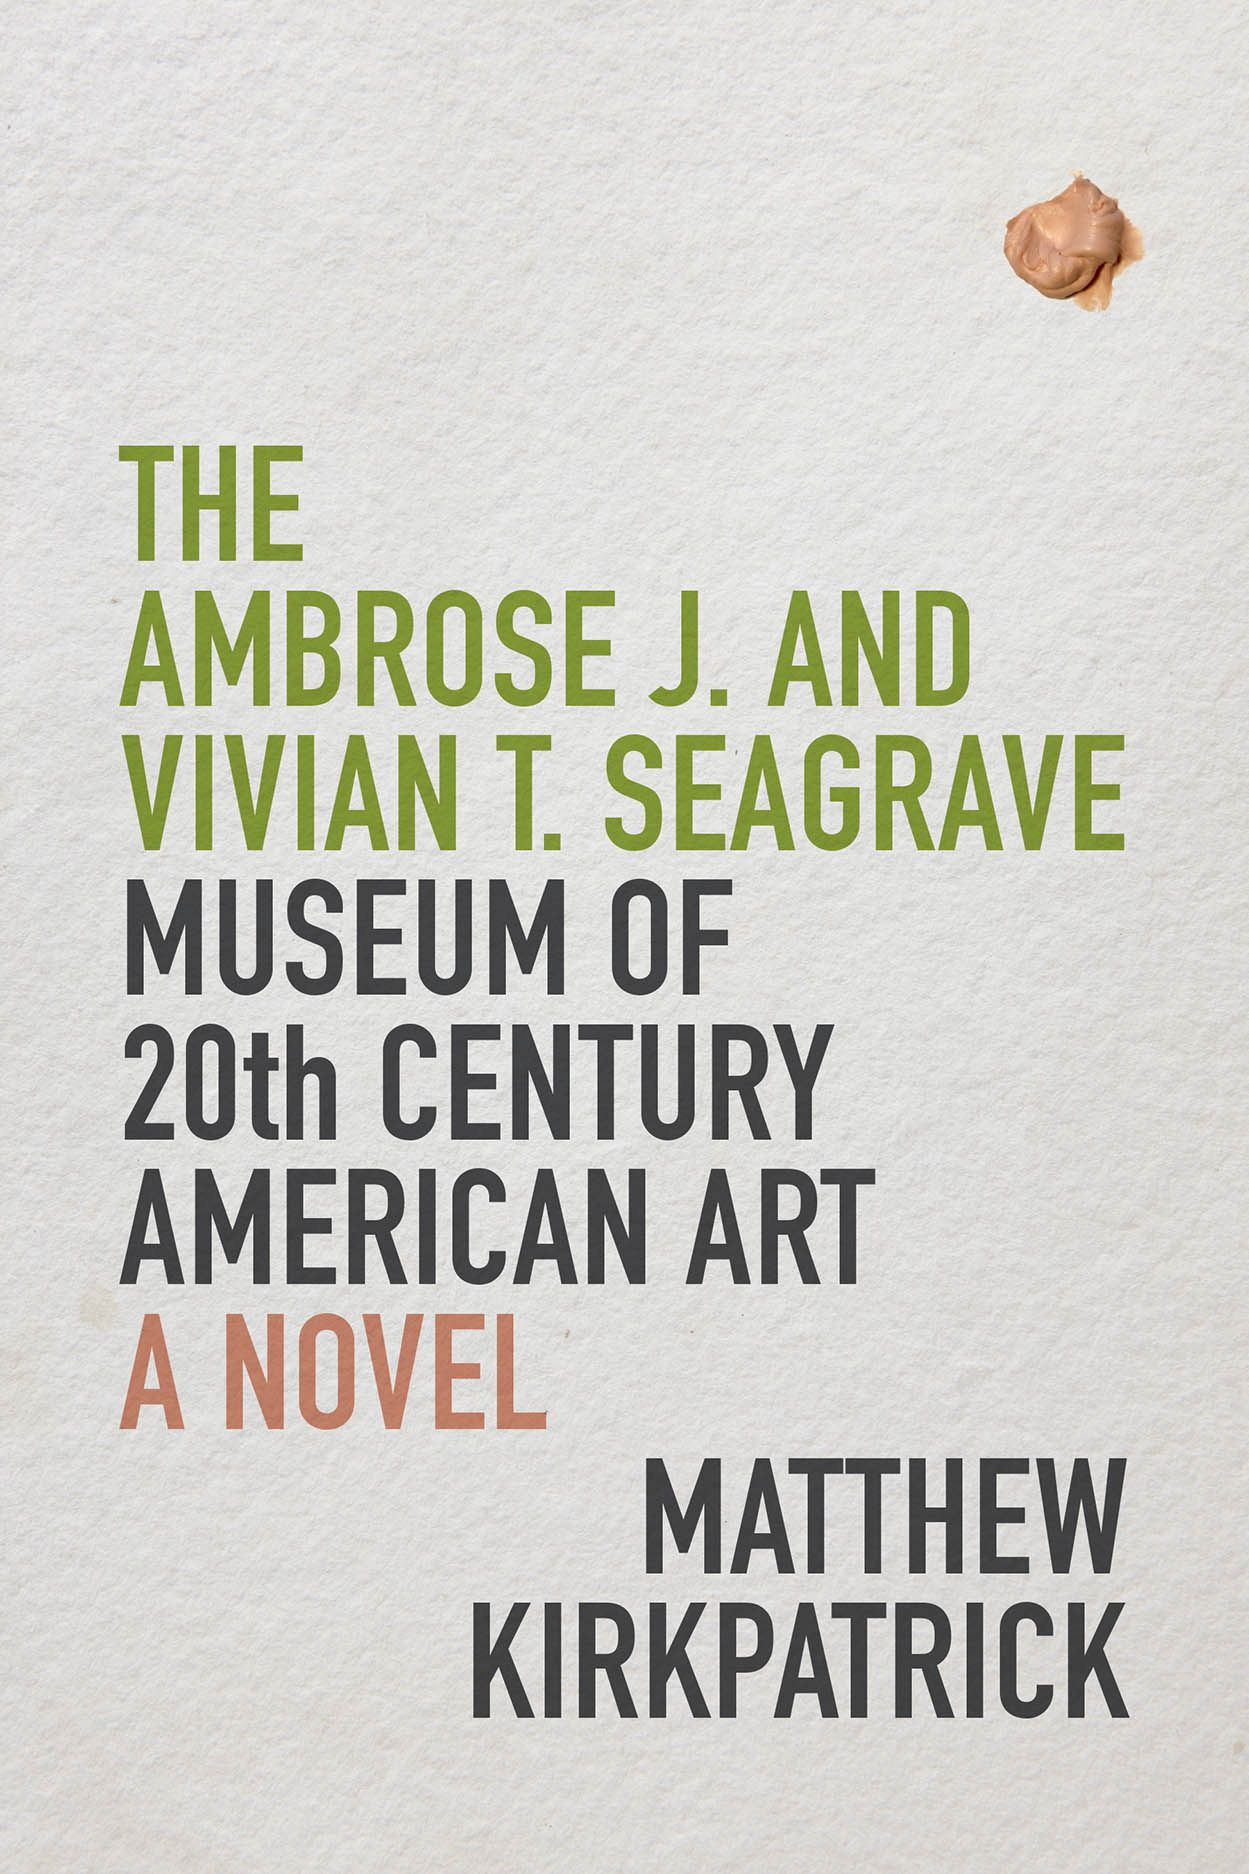 The Ambrose J. and Vivian T. Seagrave Museum of 20th Century American Art